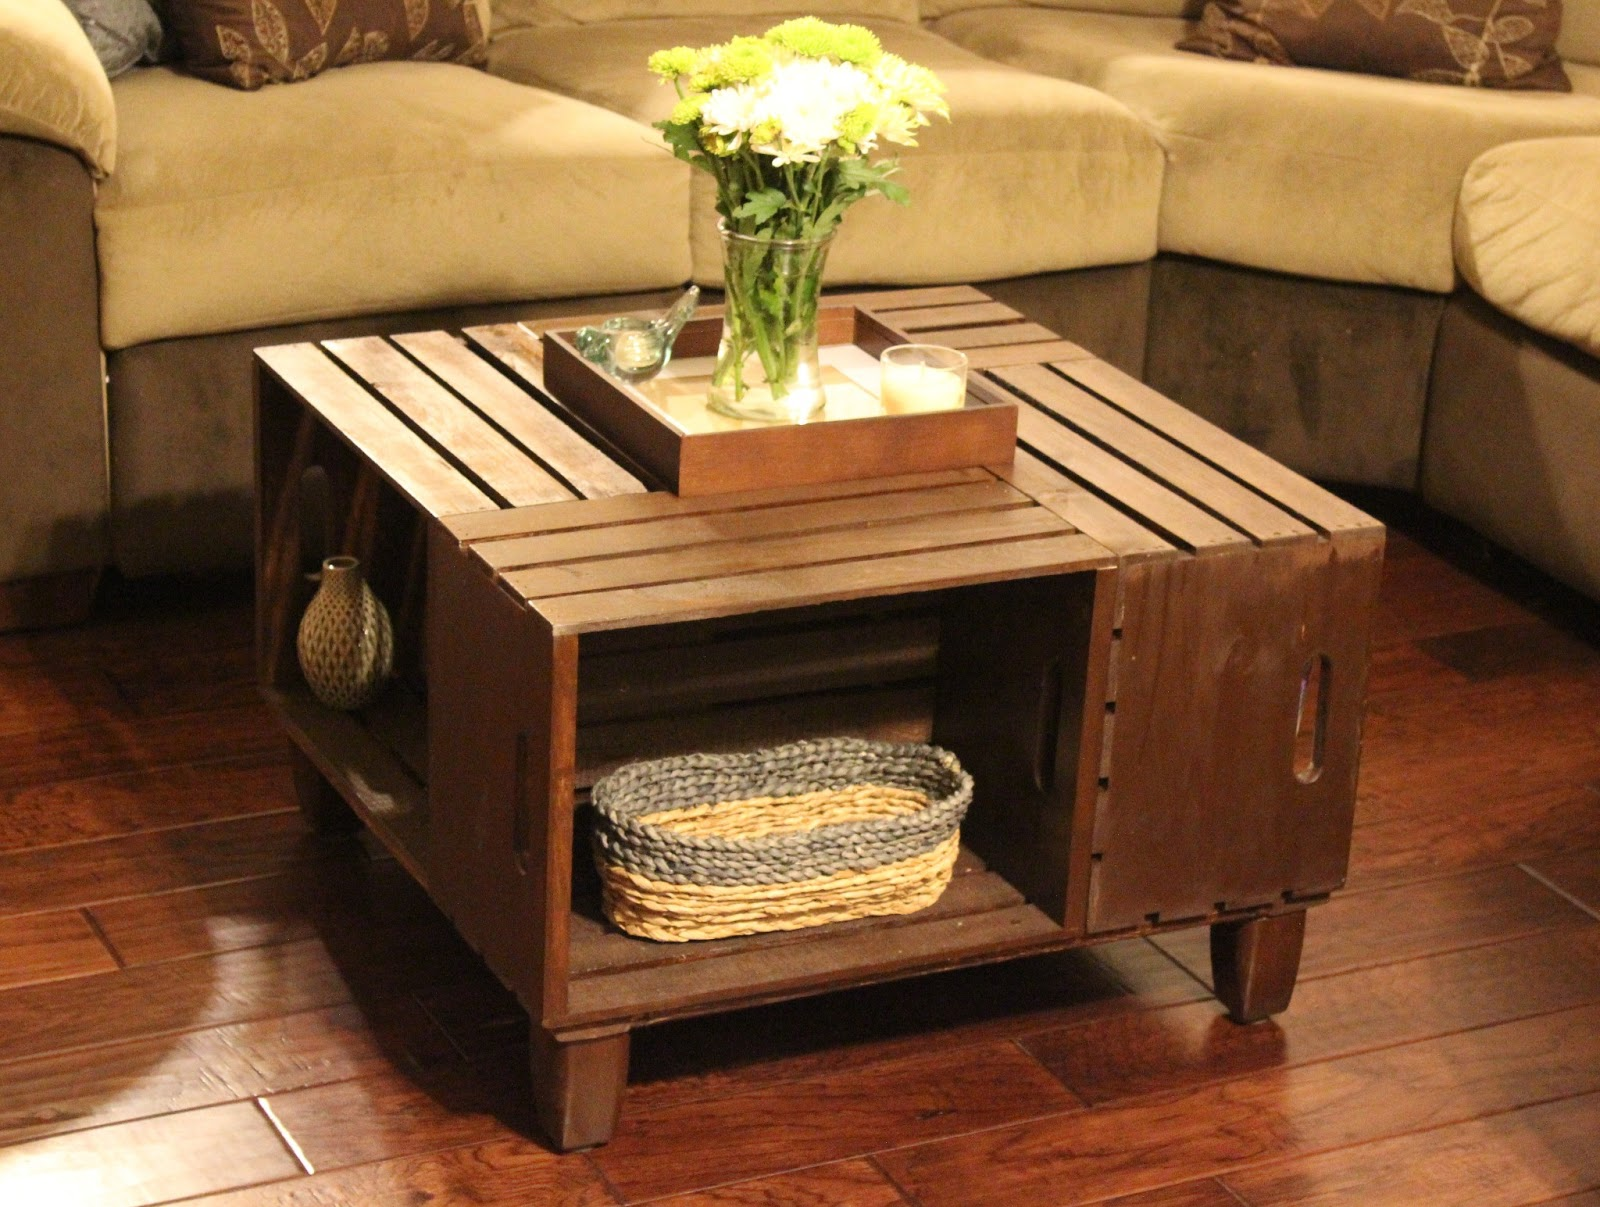 Landing On Love DIY Crate Coffee Table - Wooden dog crate coffee table